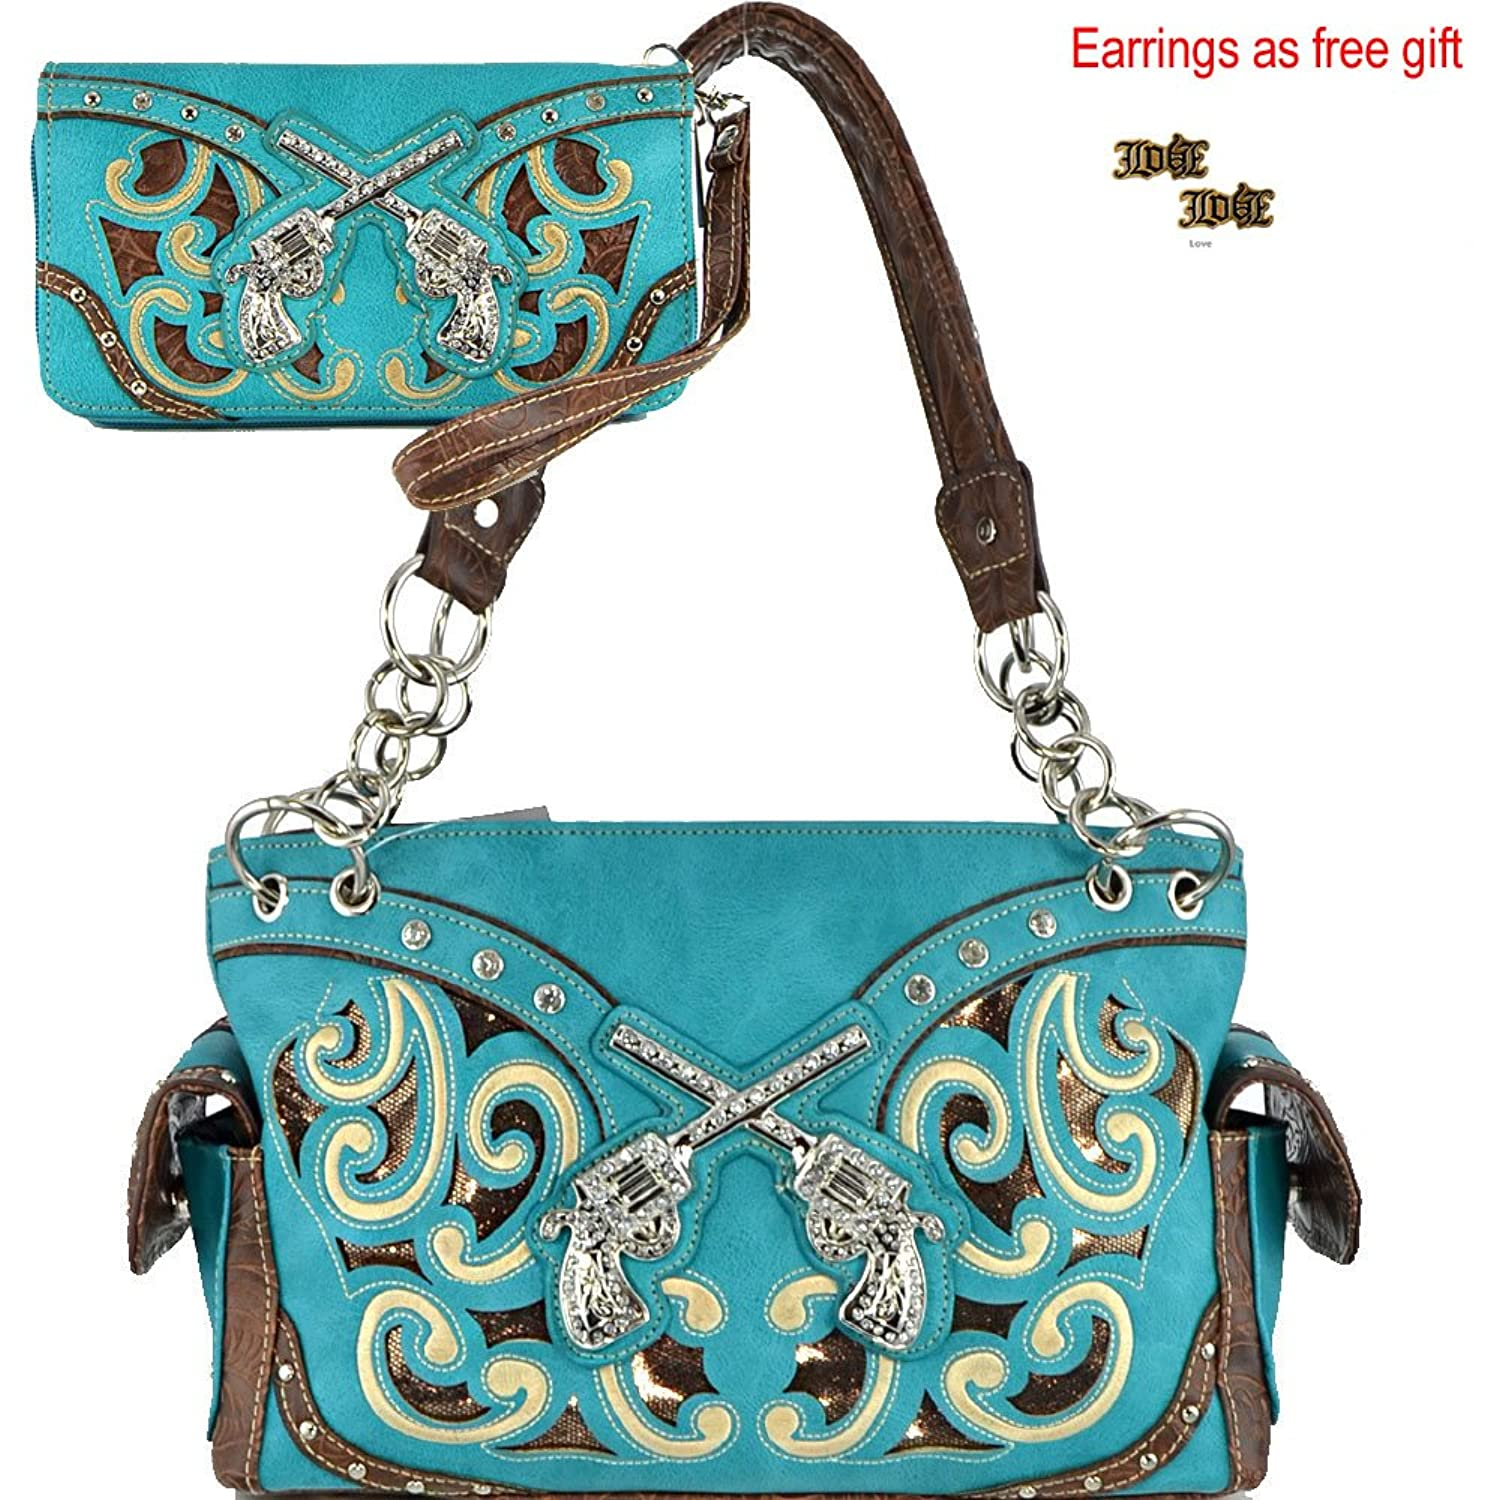 (With Earrings)(AM2-3)Western Crossed Gun Floral Laser Cut Studded Purse Concealed Carry Handbag & Wallet Set-G939W13GS-SET